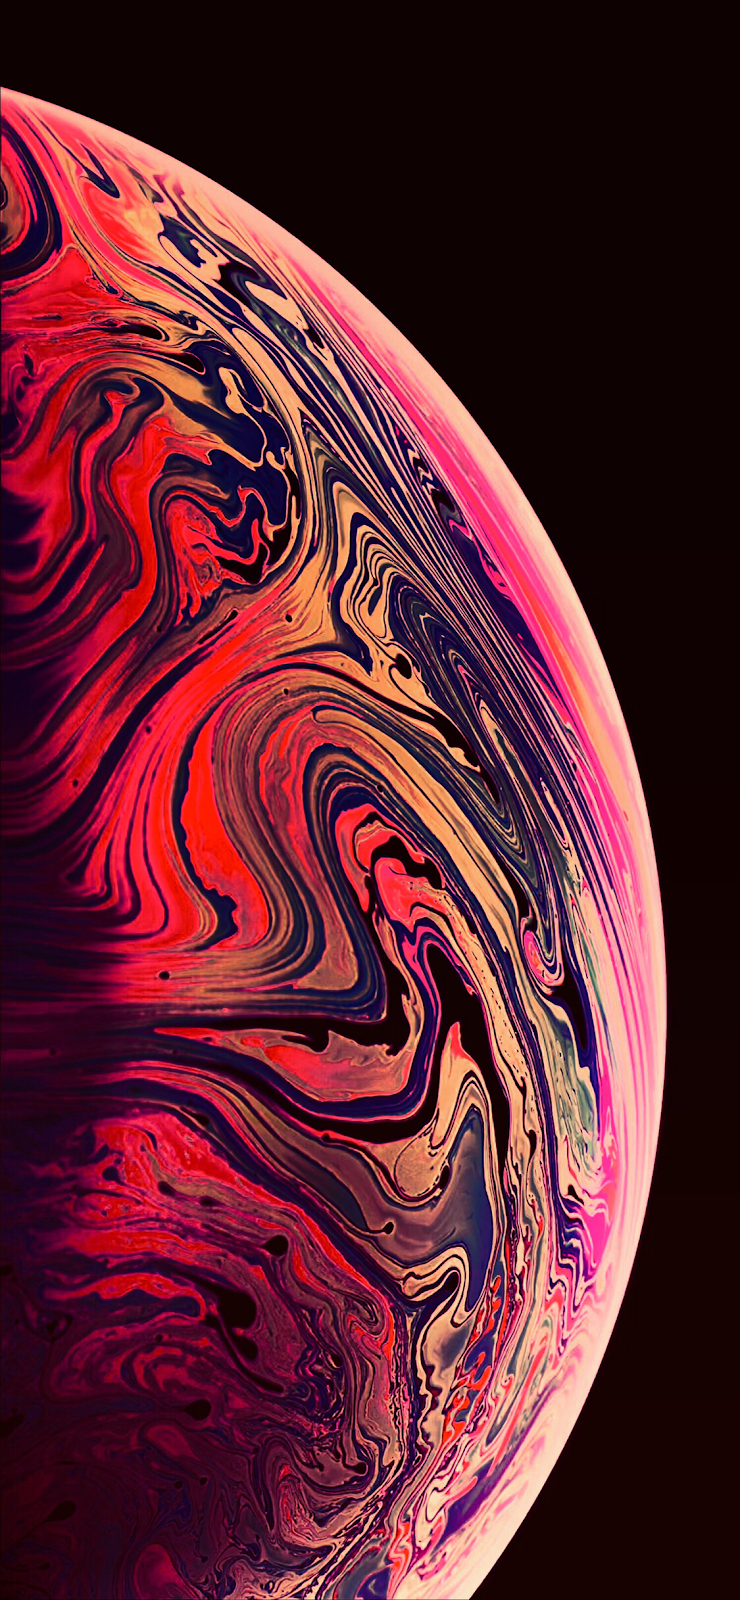 iPhone XS MAX Gradient Modd Wallpapers by AR72014 (2